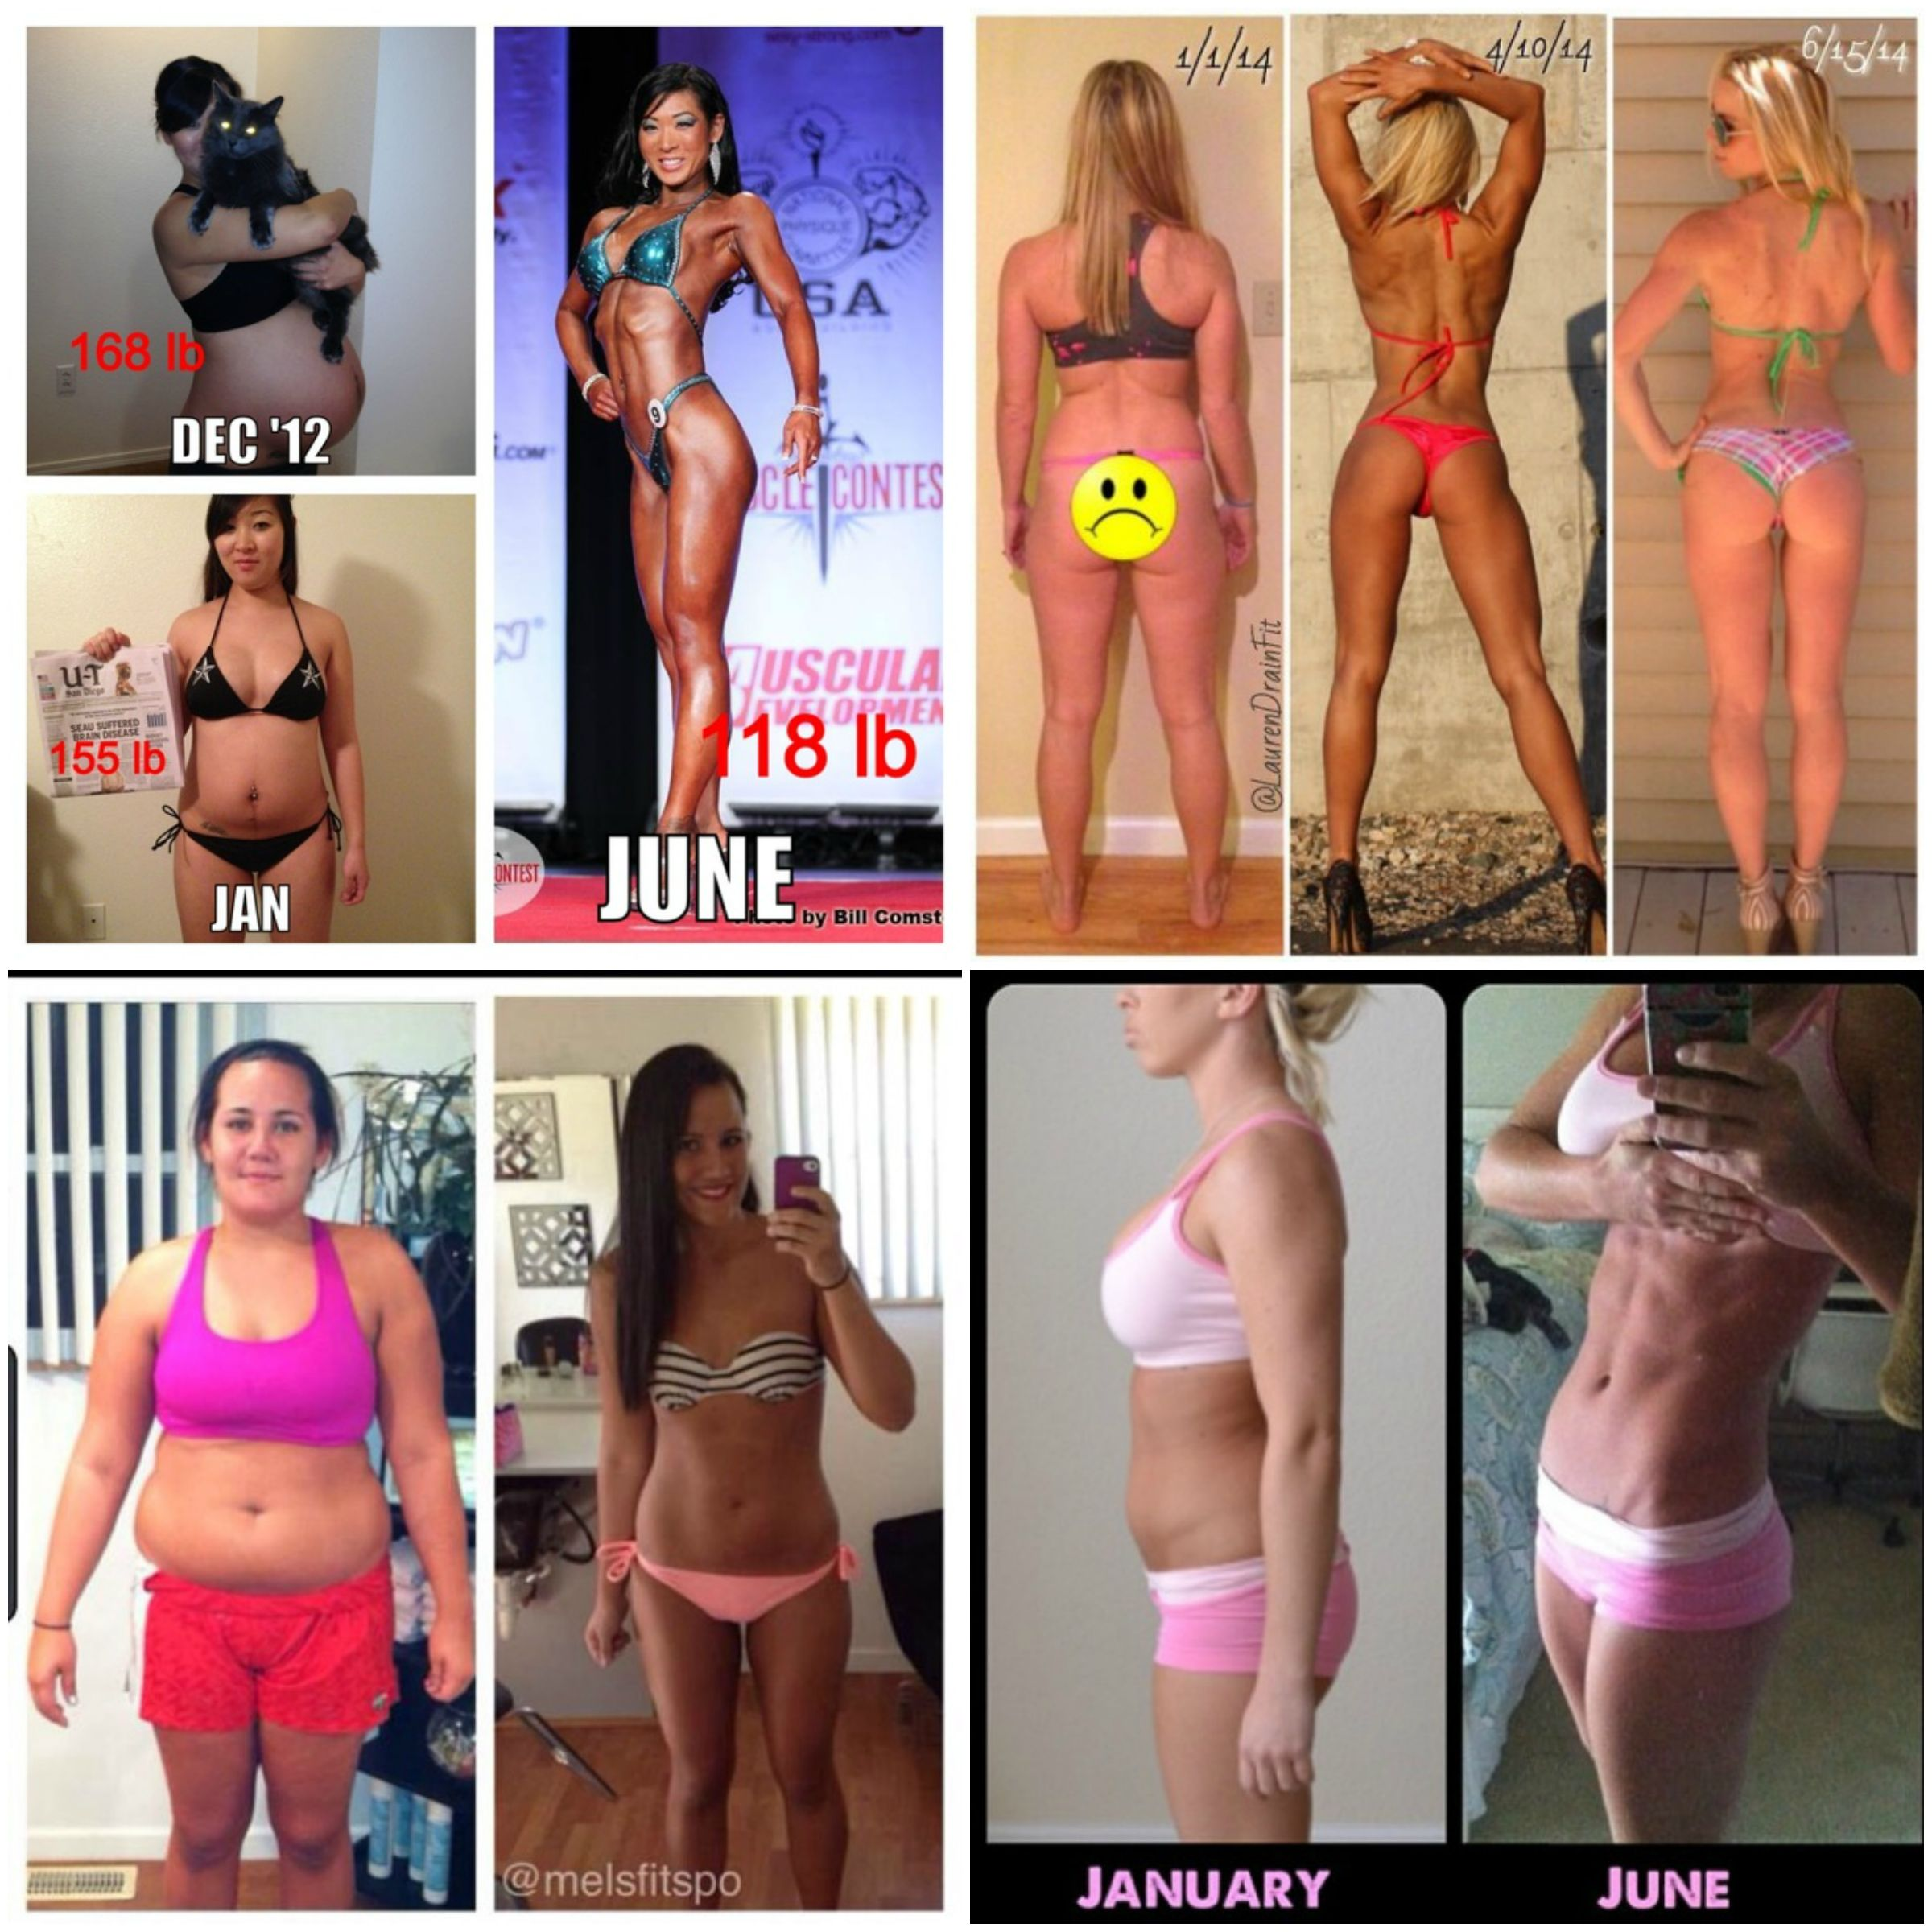 a: Female Body Transformation 3 Months, Female